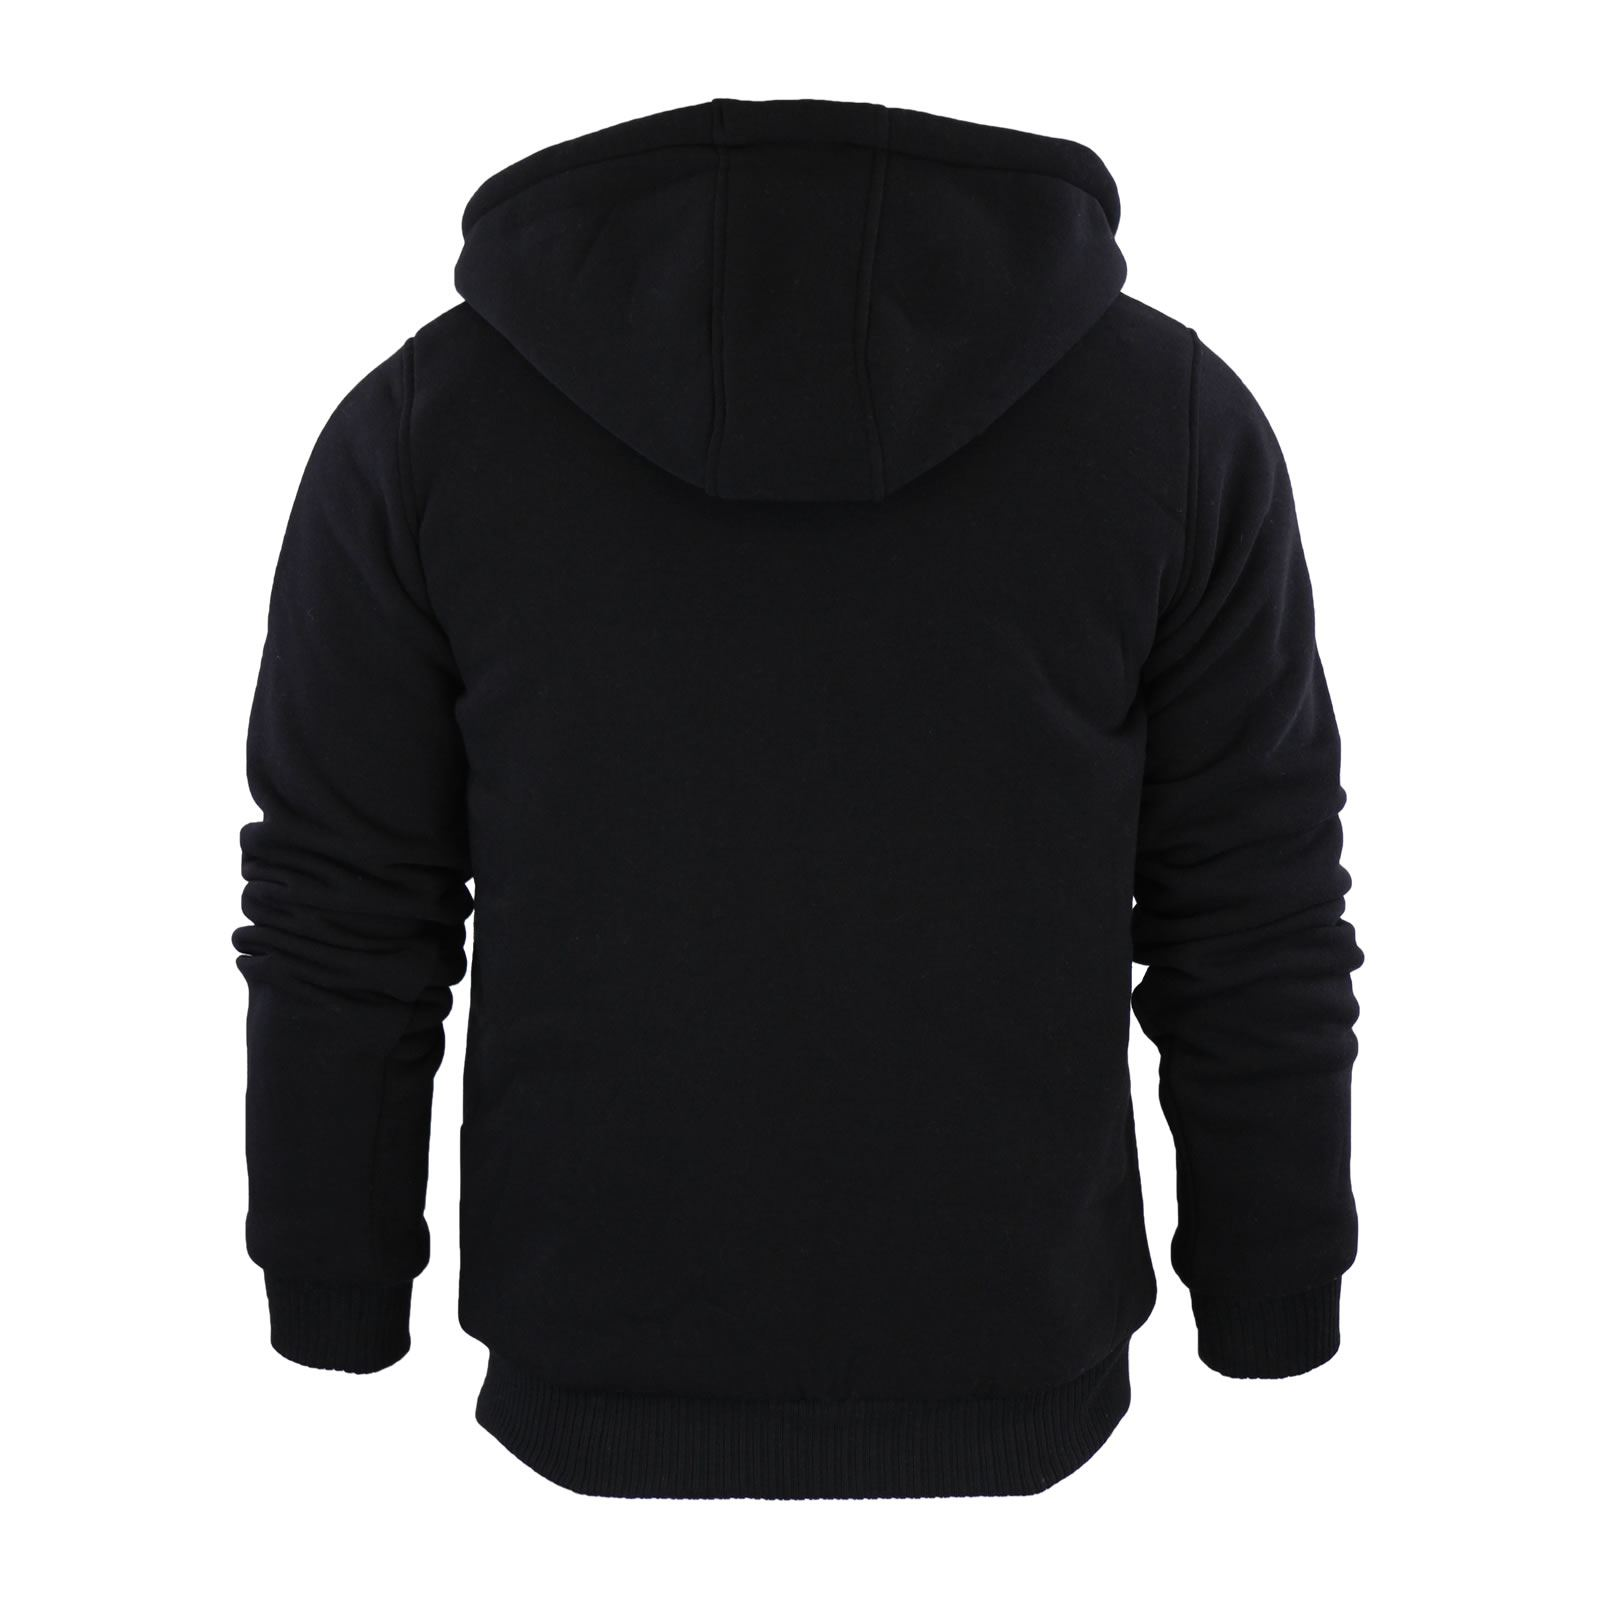 Mens-Hoodie-Brave-Soul-Zone-Sherpa-Fleece-Lined-Zip-Up-Hooded-Sweater thumbnail 21